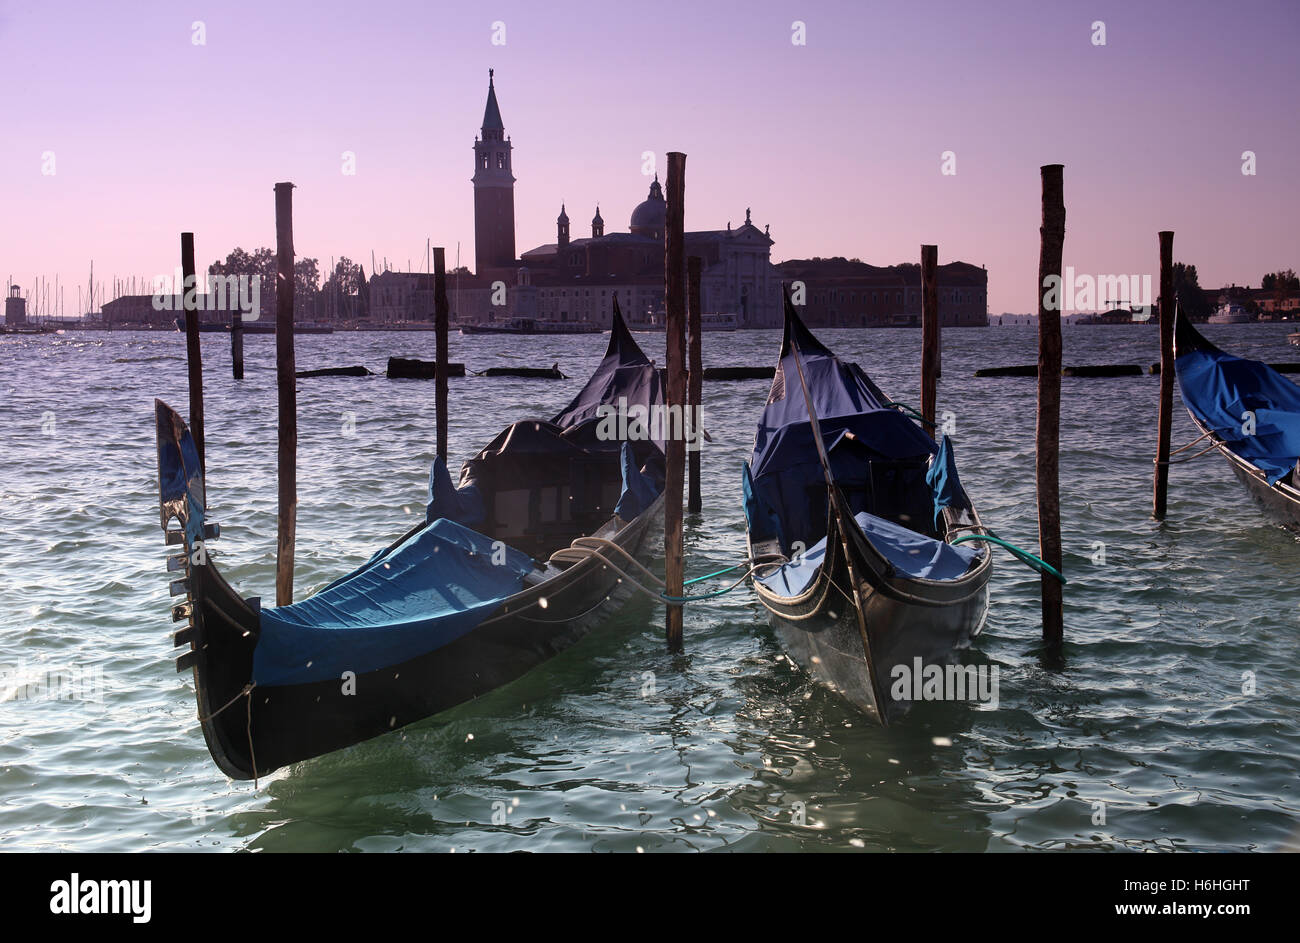 The iconic gondolas of Venice Italy moored in the Bacino San Marco - Stock Image